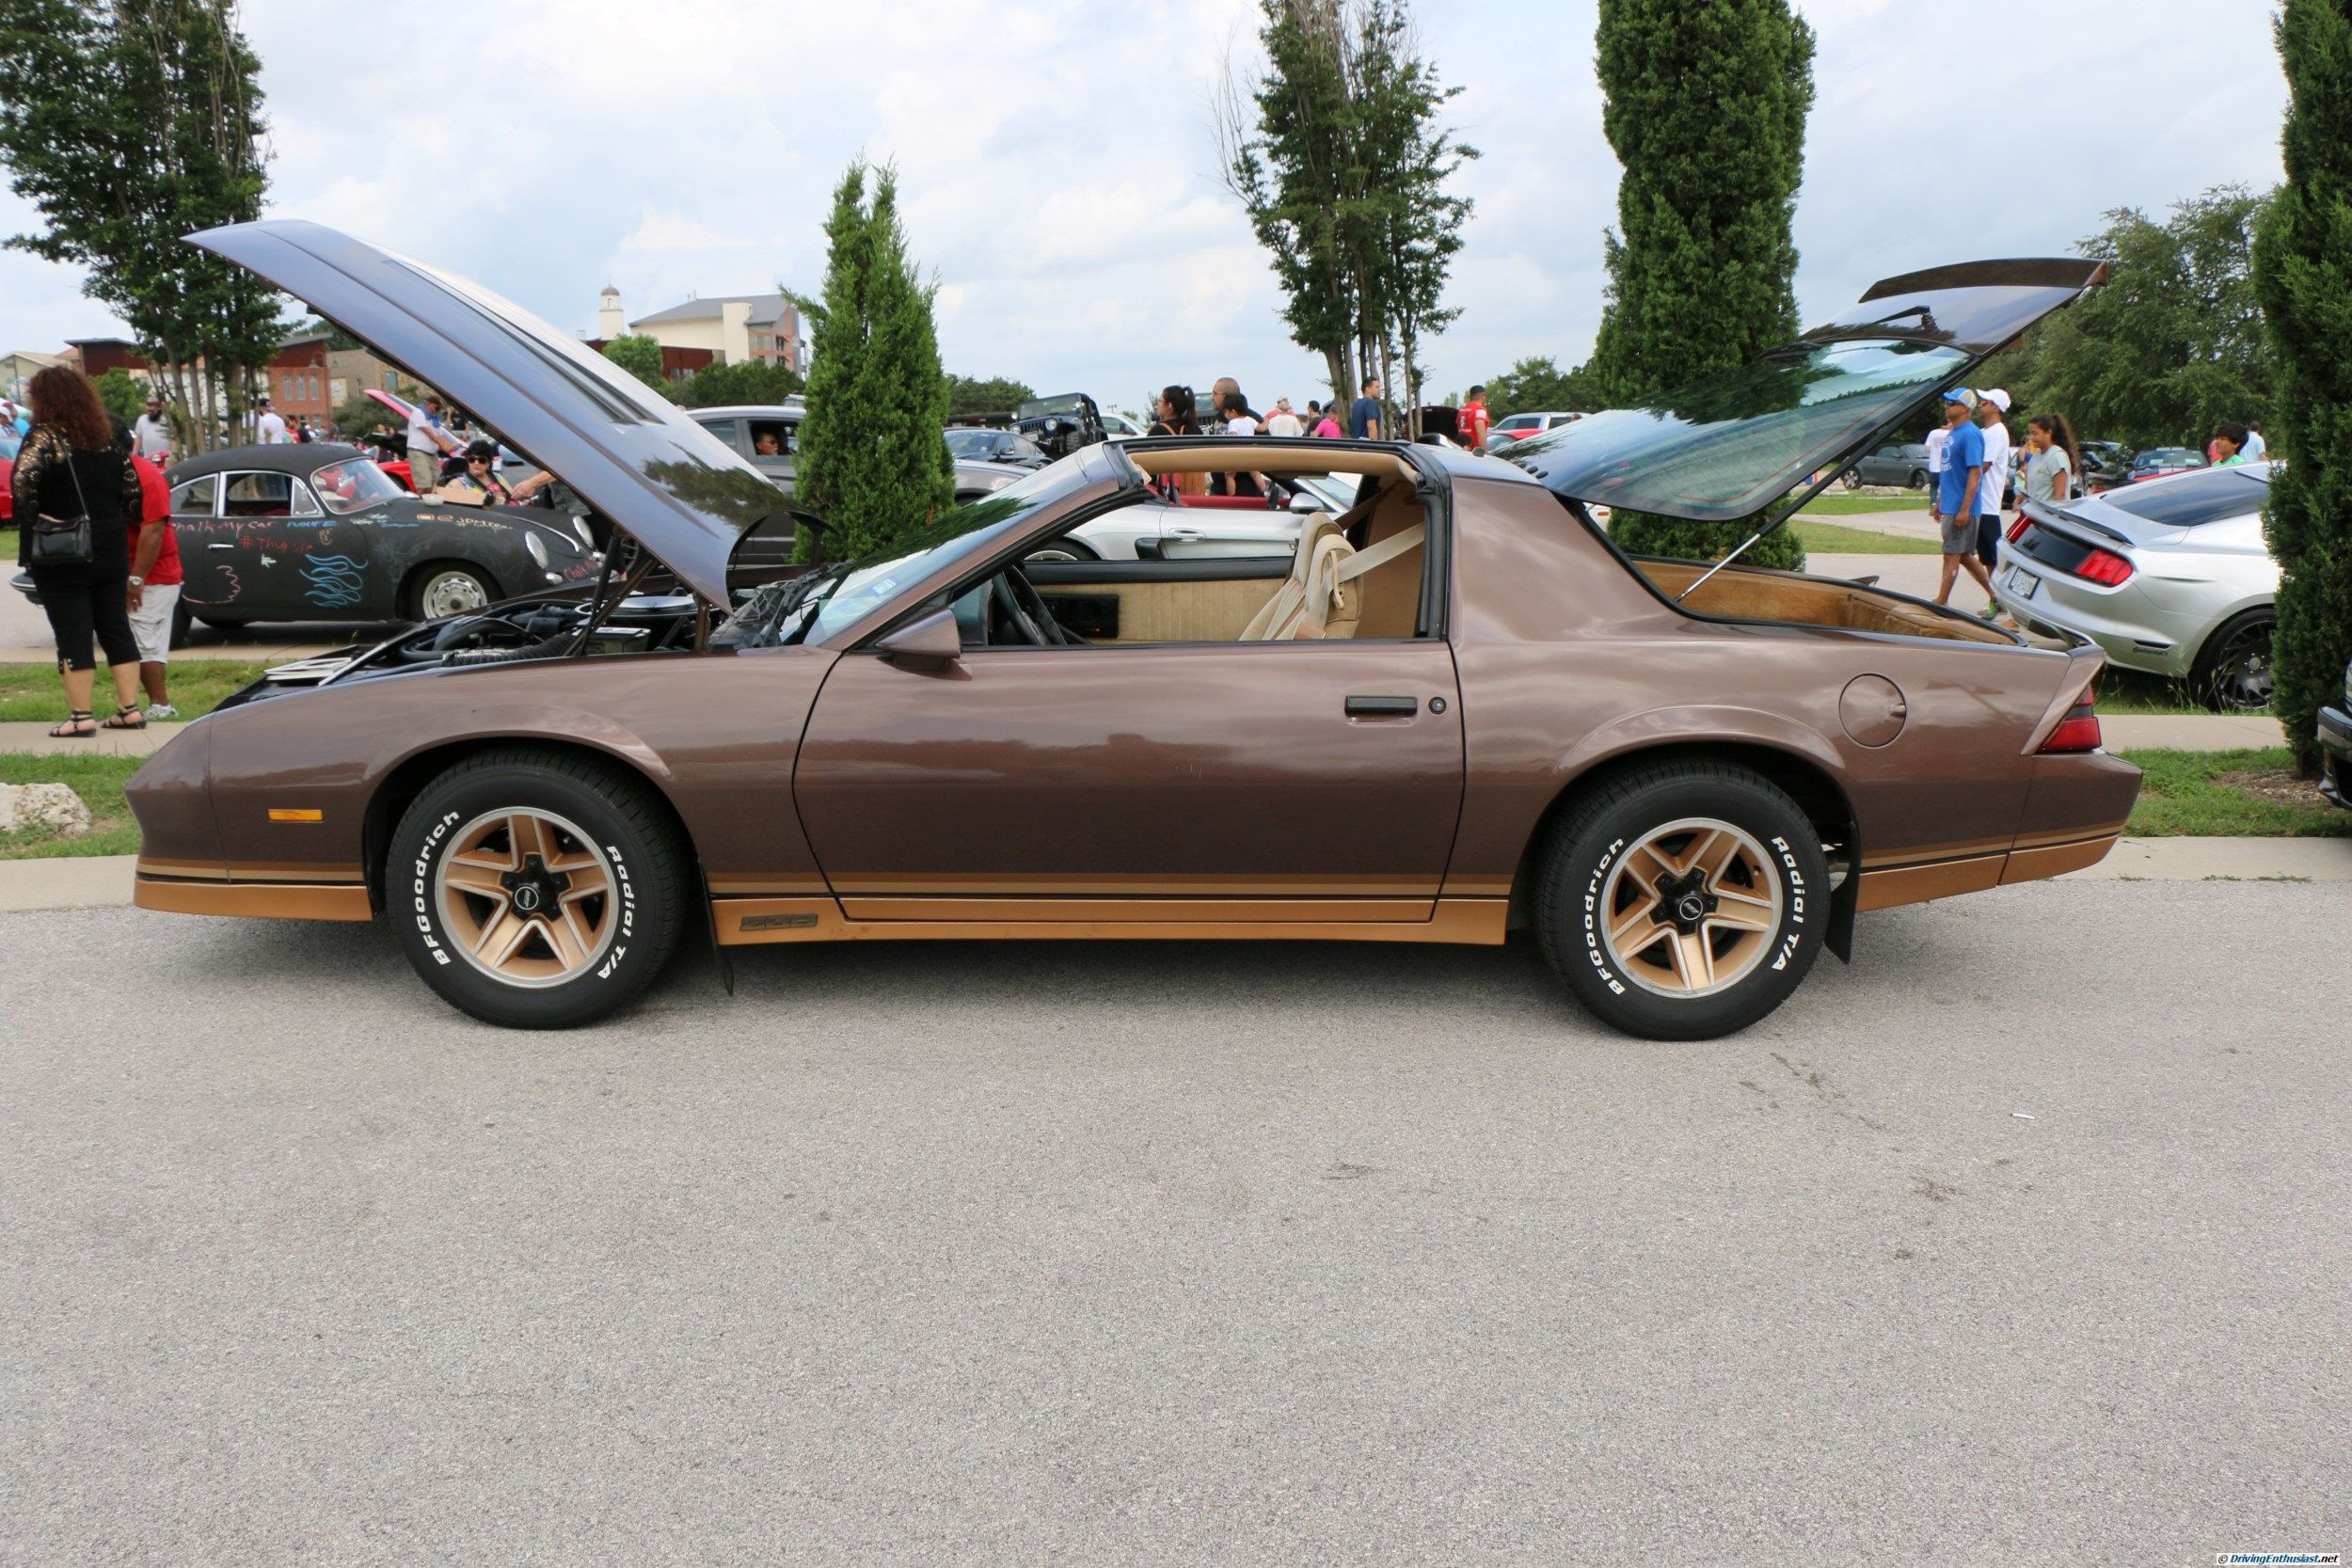 1982 Camaro Z28 with circa 1986 350 engine swap. As seen at the June ...